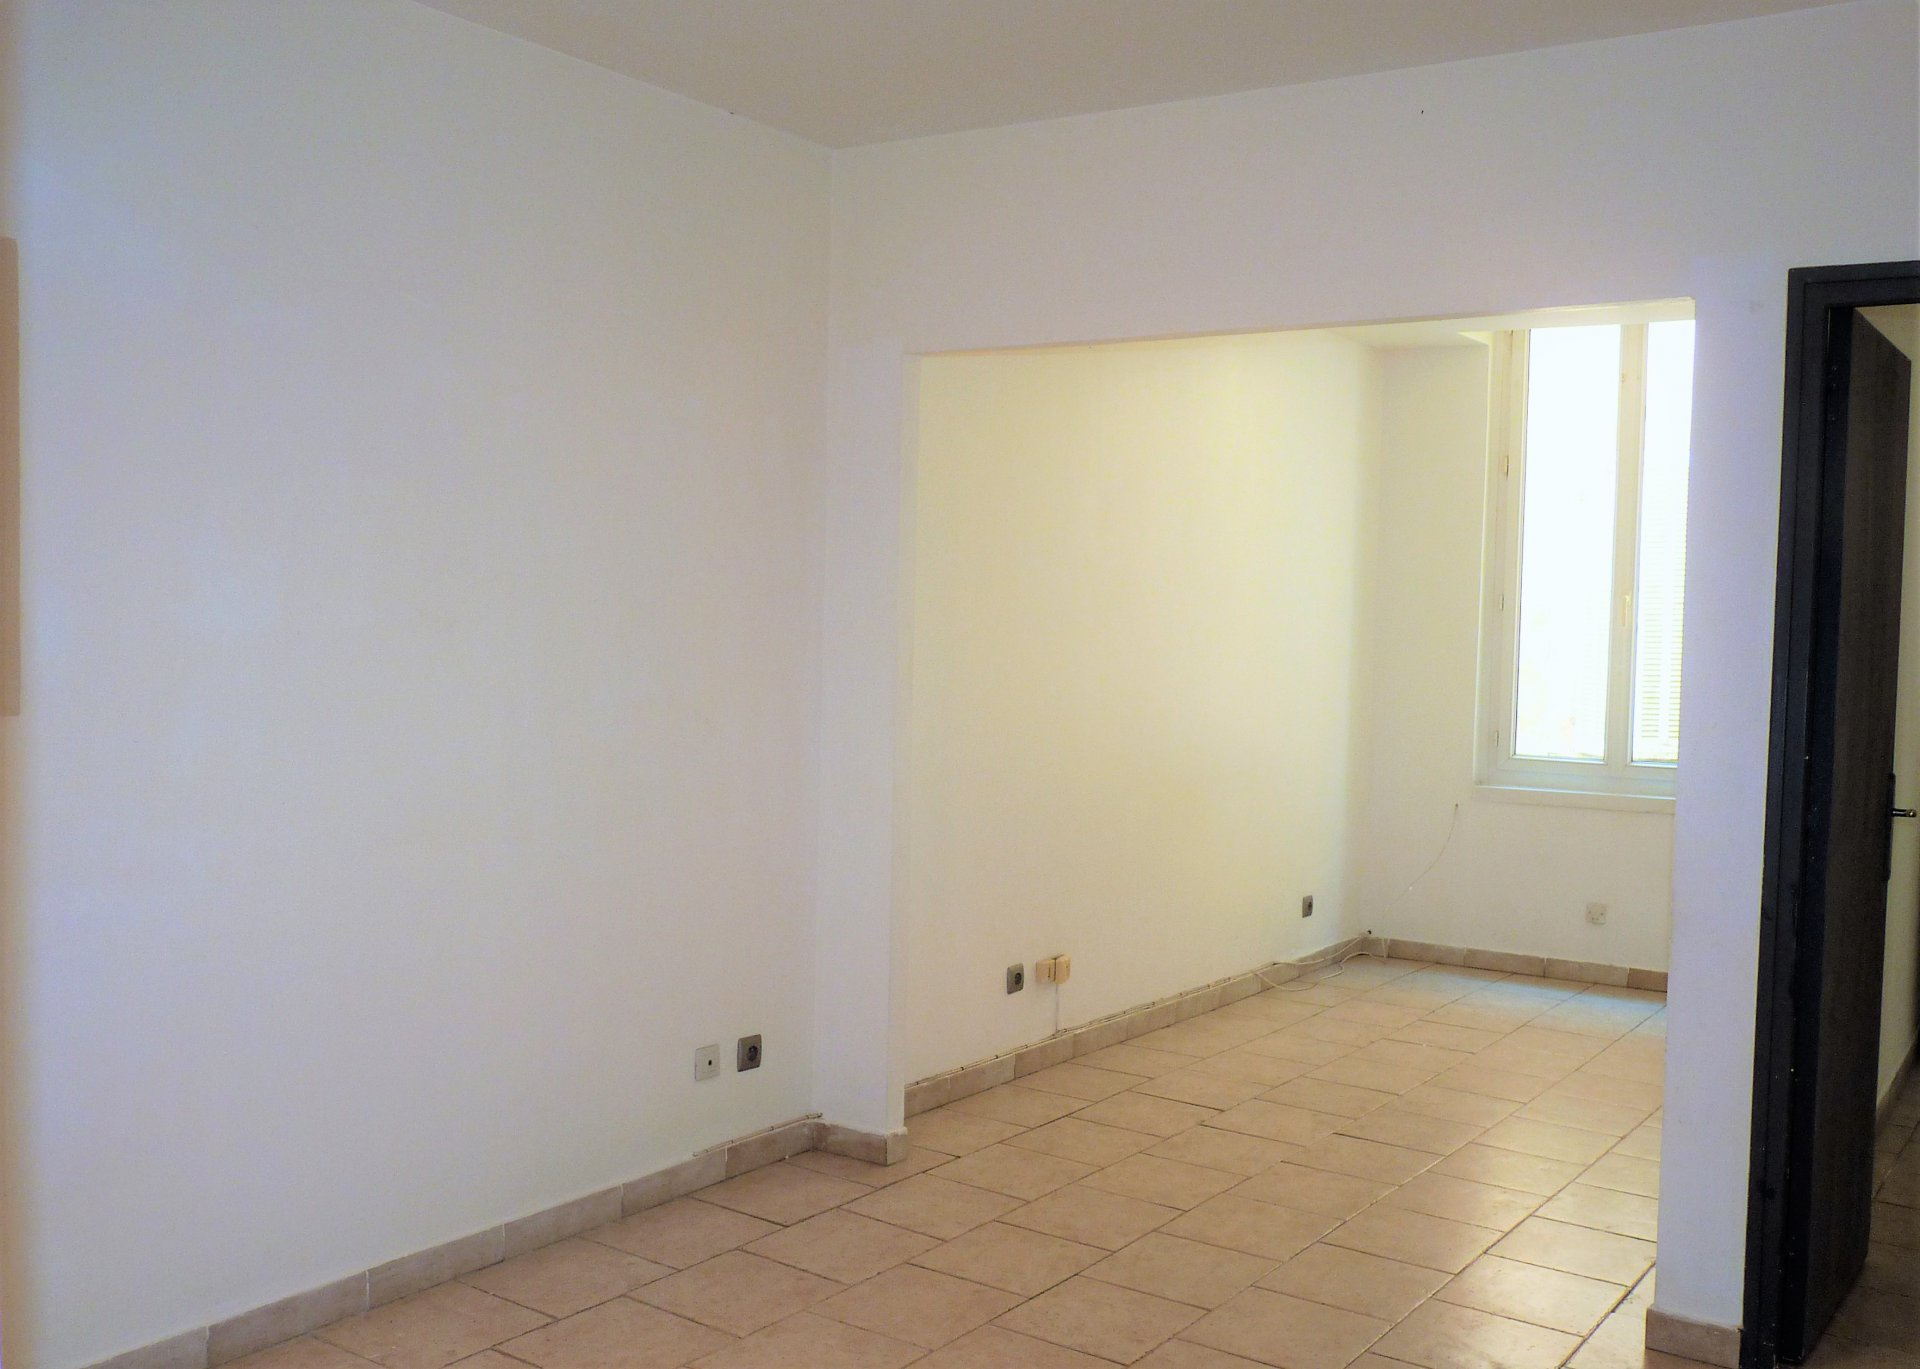 Location T2- La Ciotat